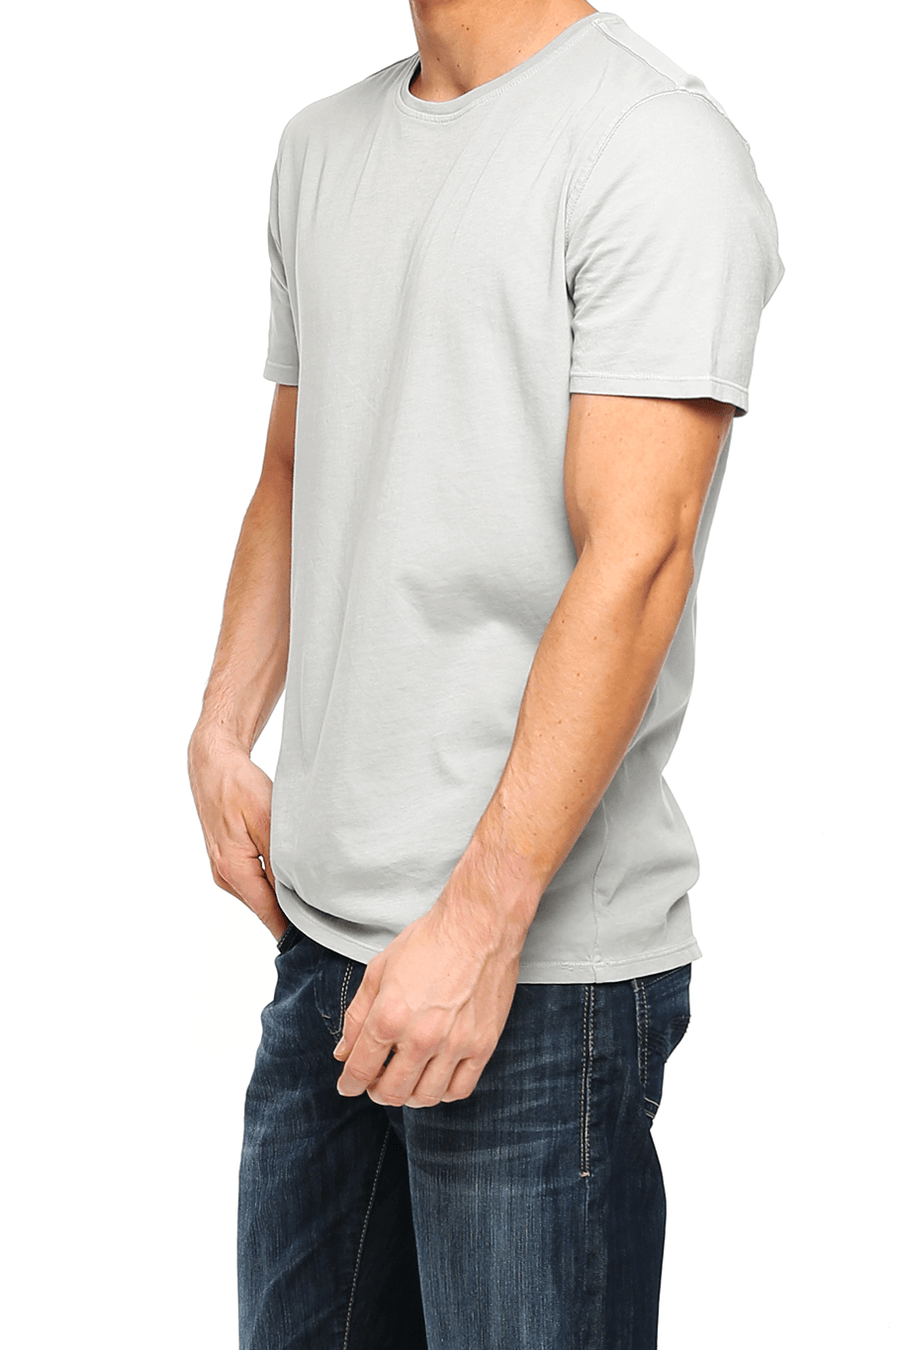 Crew Neck Short Sleeve Tee - Highrise - Shore